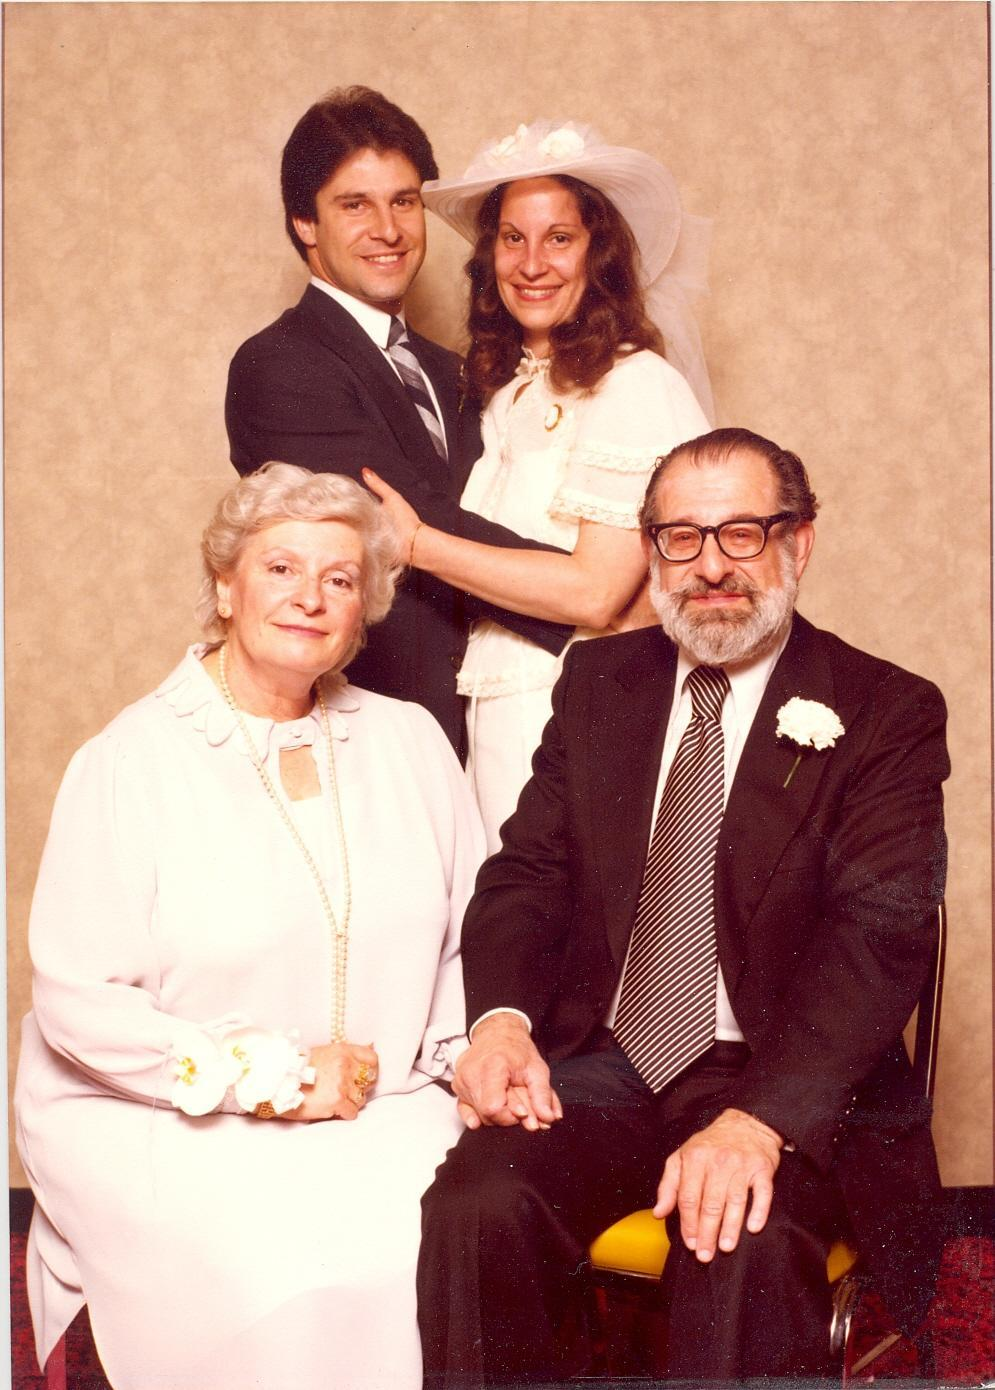 Marcia Soloski Levin and her Family, 1981